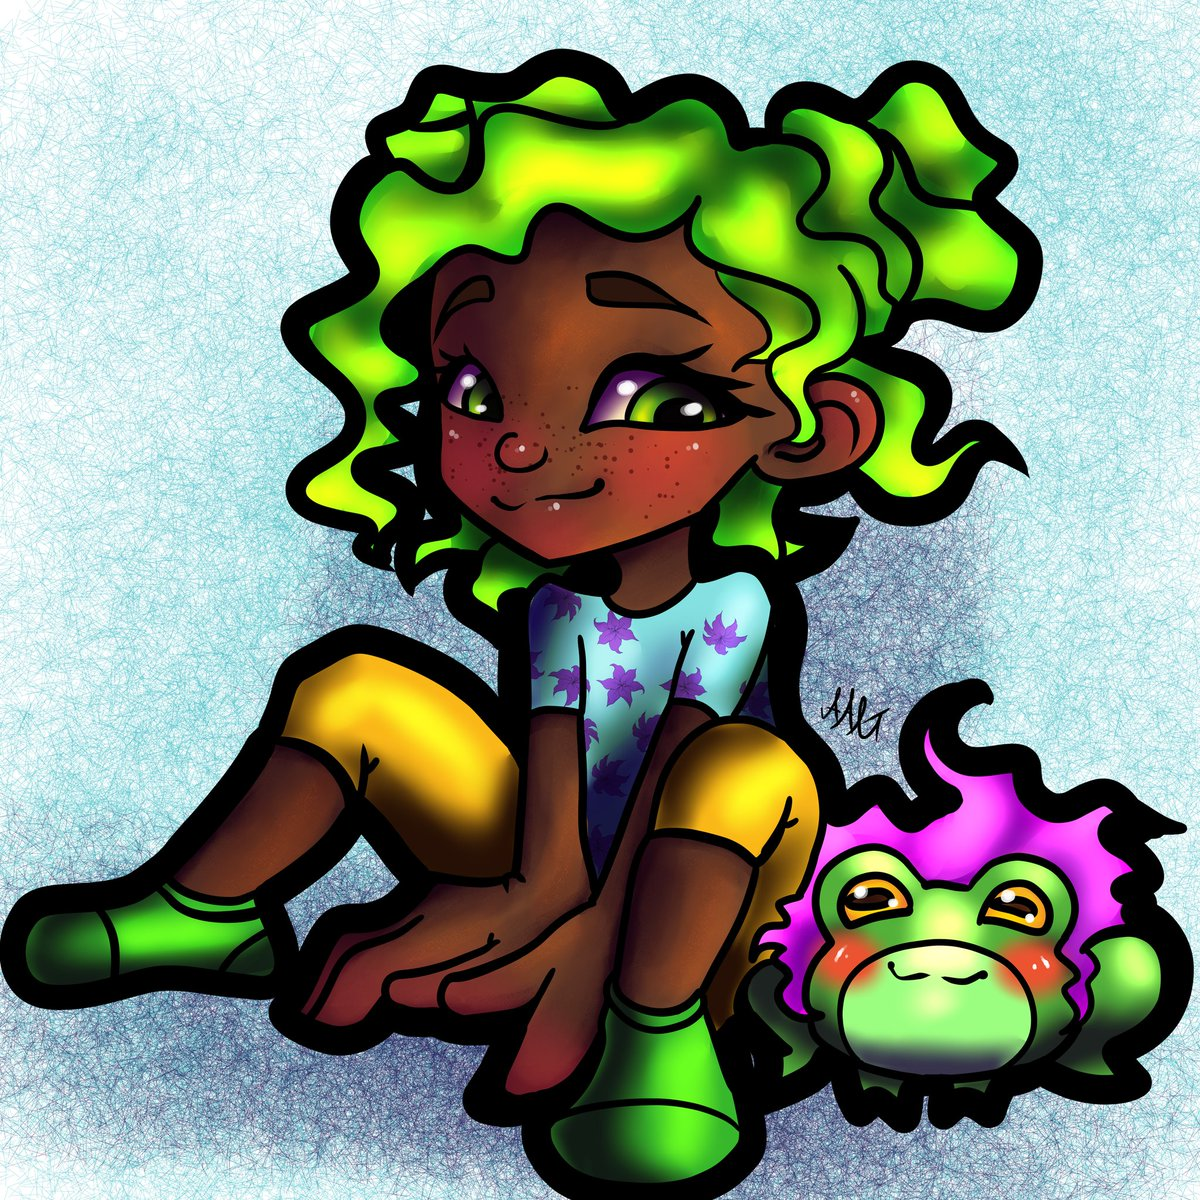 Really liked these two.. so I drew them again  decided why not give froggo a cute lil wig #frogust #frog #frogs #greenhair #greeneyes #pinkhair #cute #chibi #chibiart #cutechibi #cuteart #girl #characterart #character #digitalart #digital #CLIPSTUDIOPAINTpic.twitter.com/EzkfdlgqBX